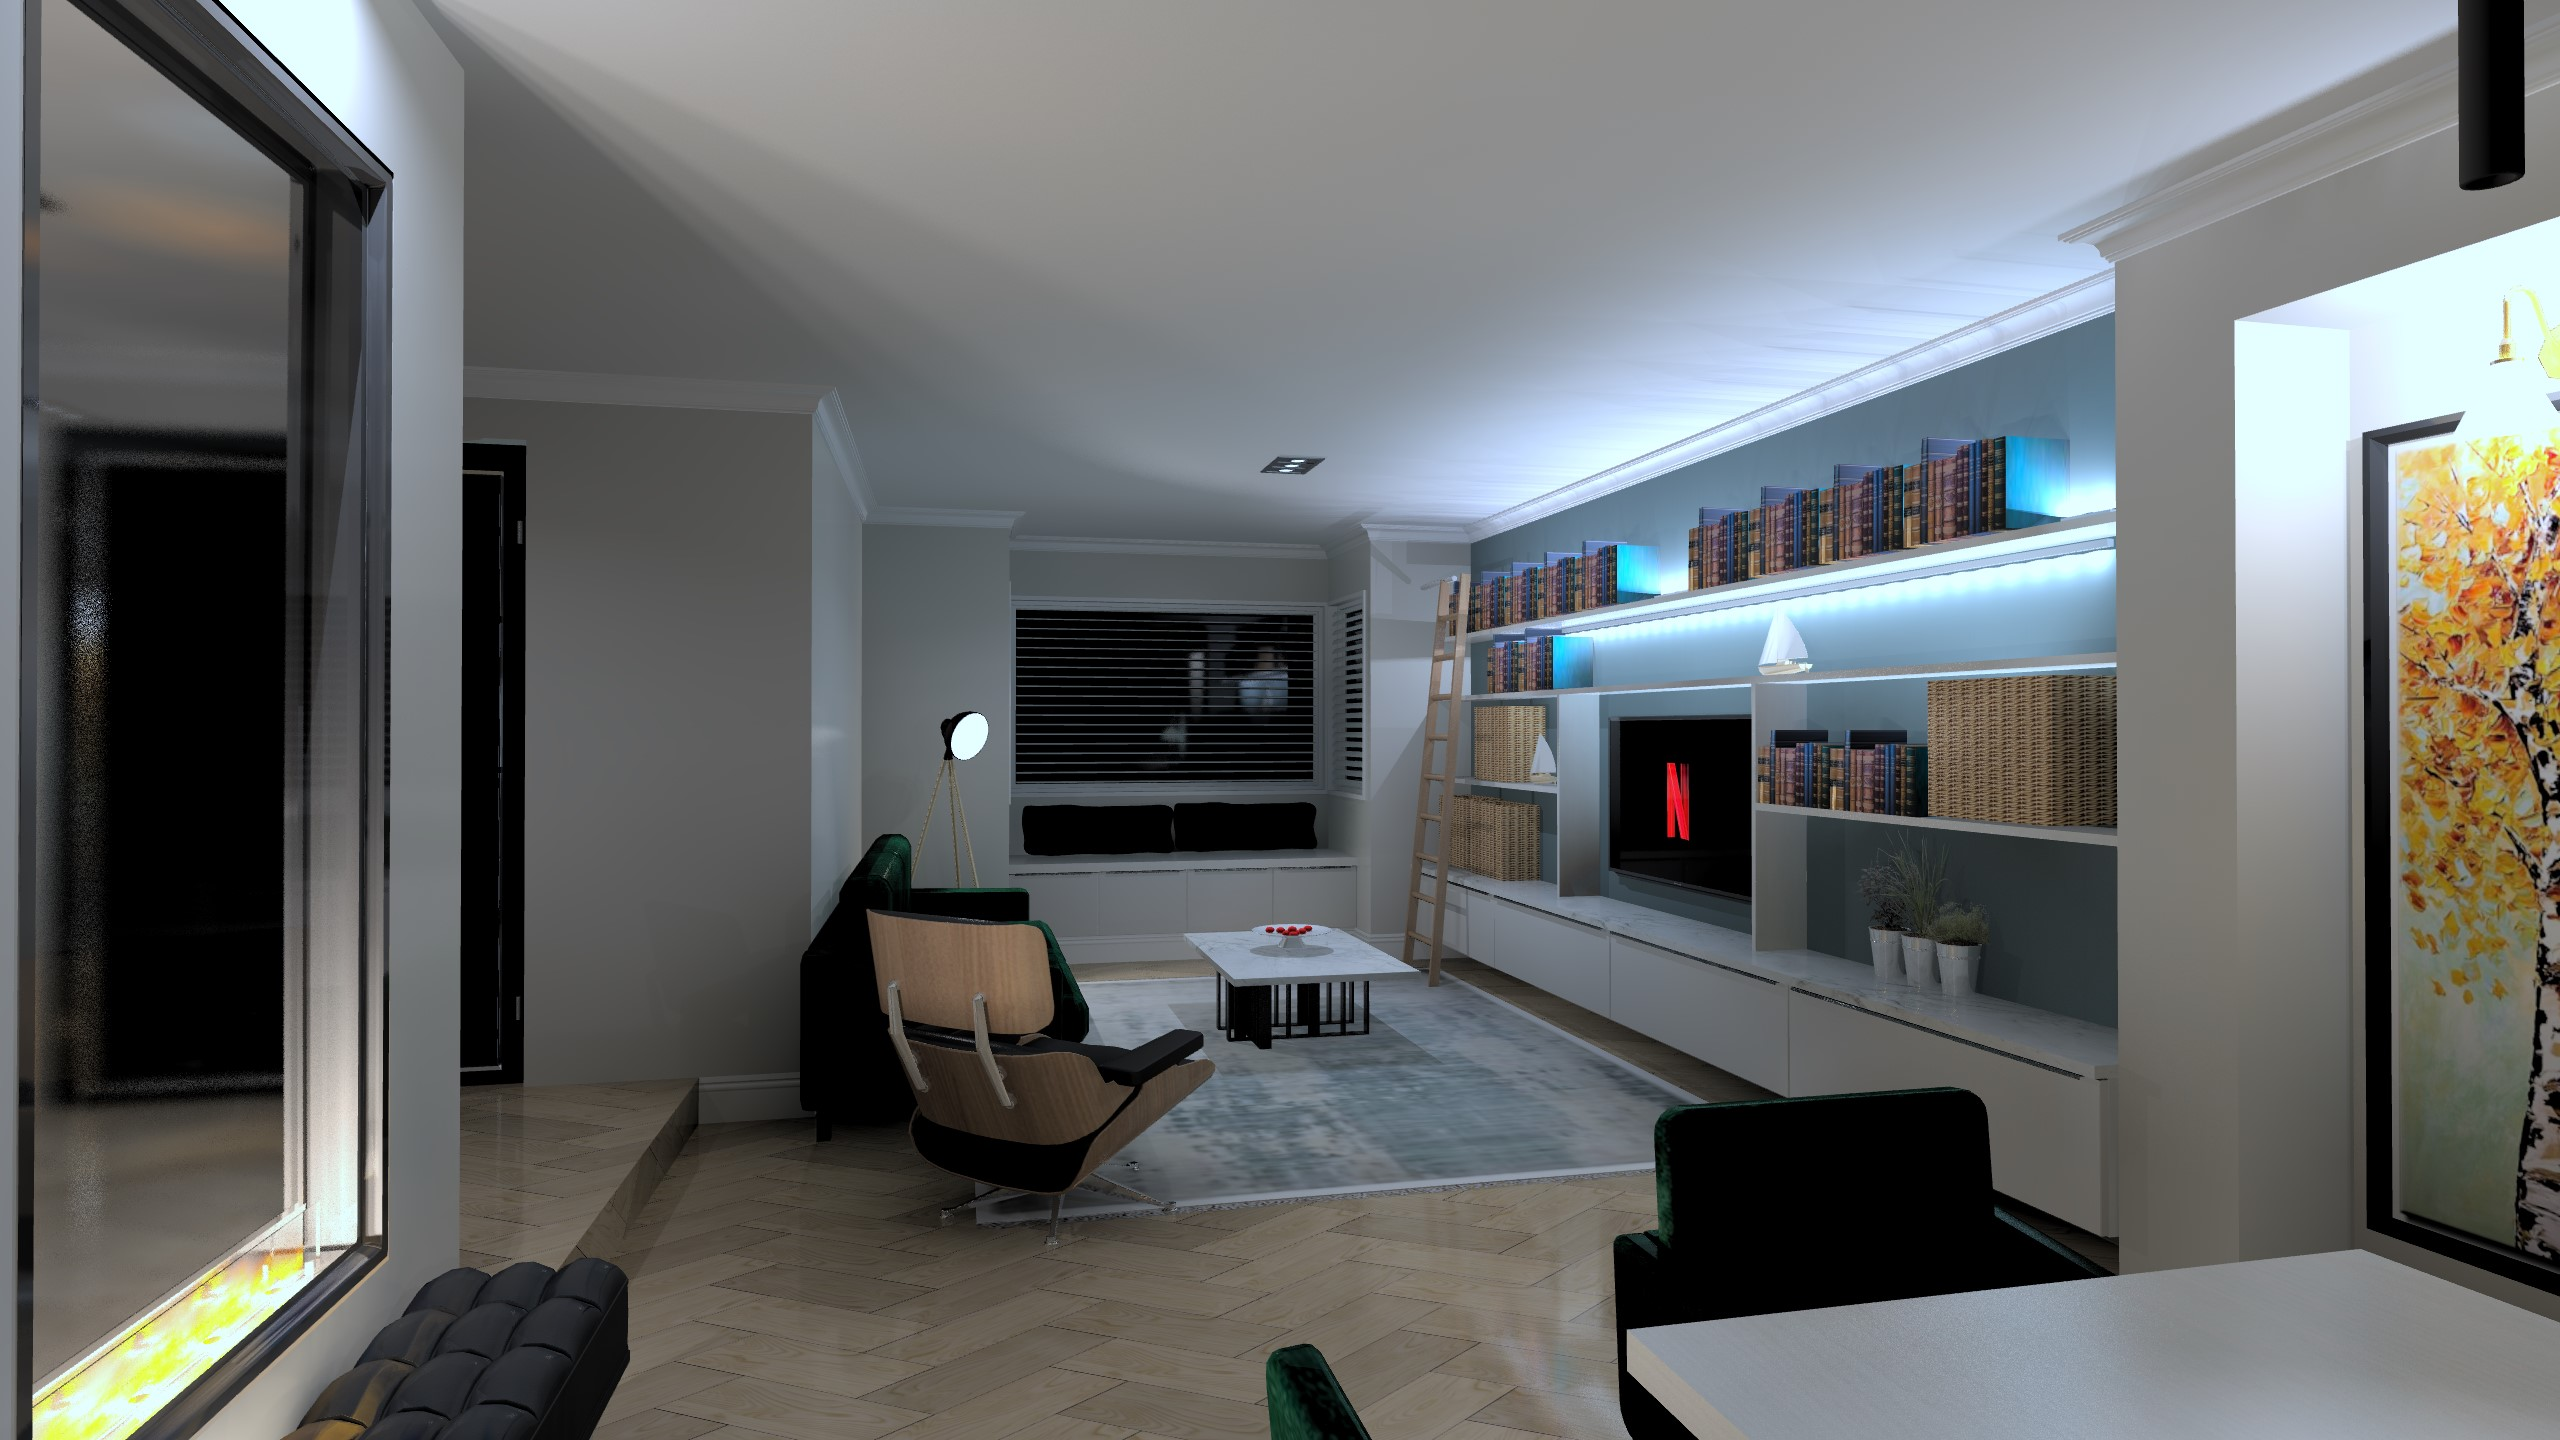 lounge extension at night